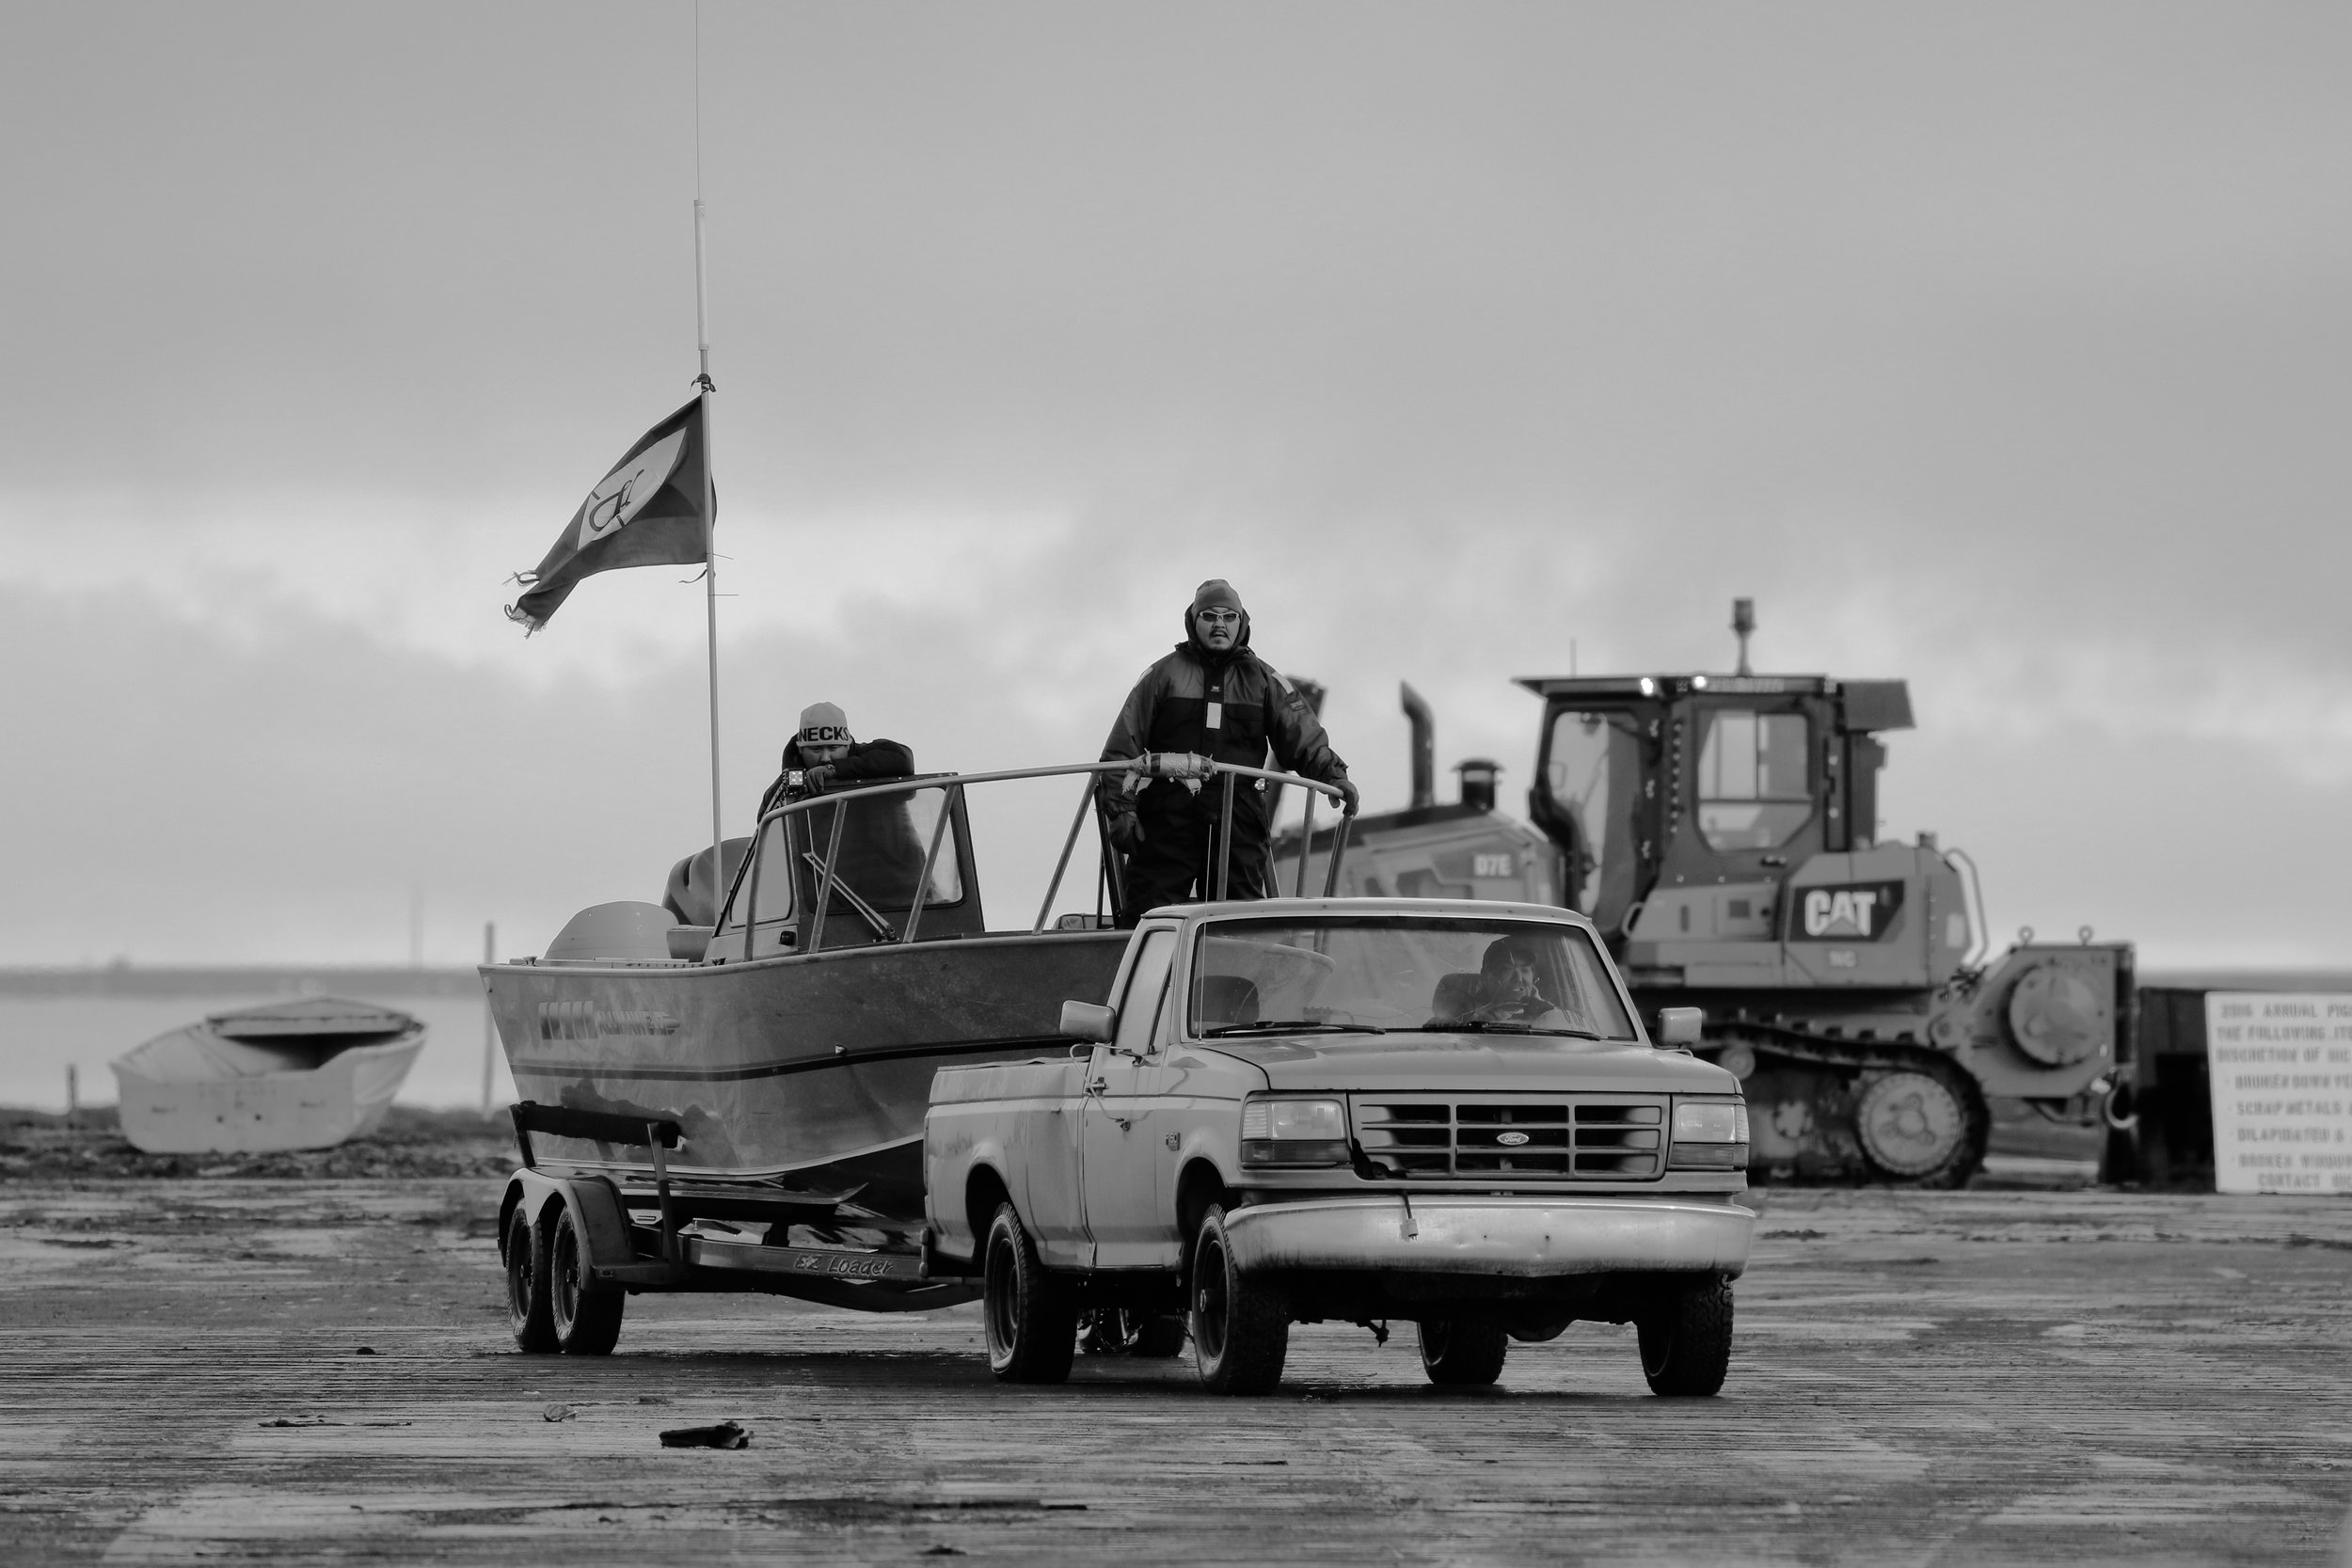 The Captain of the successful whaling crew returns from the ocean with their flag proudly displayed.